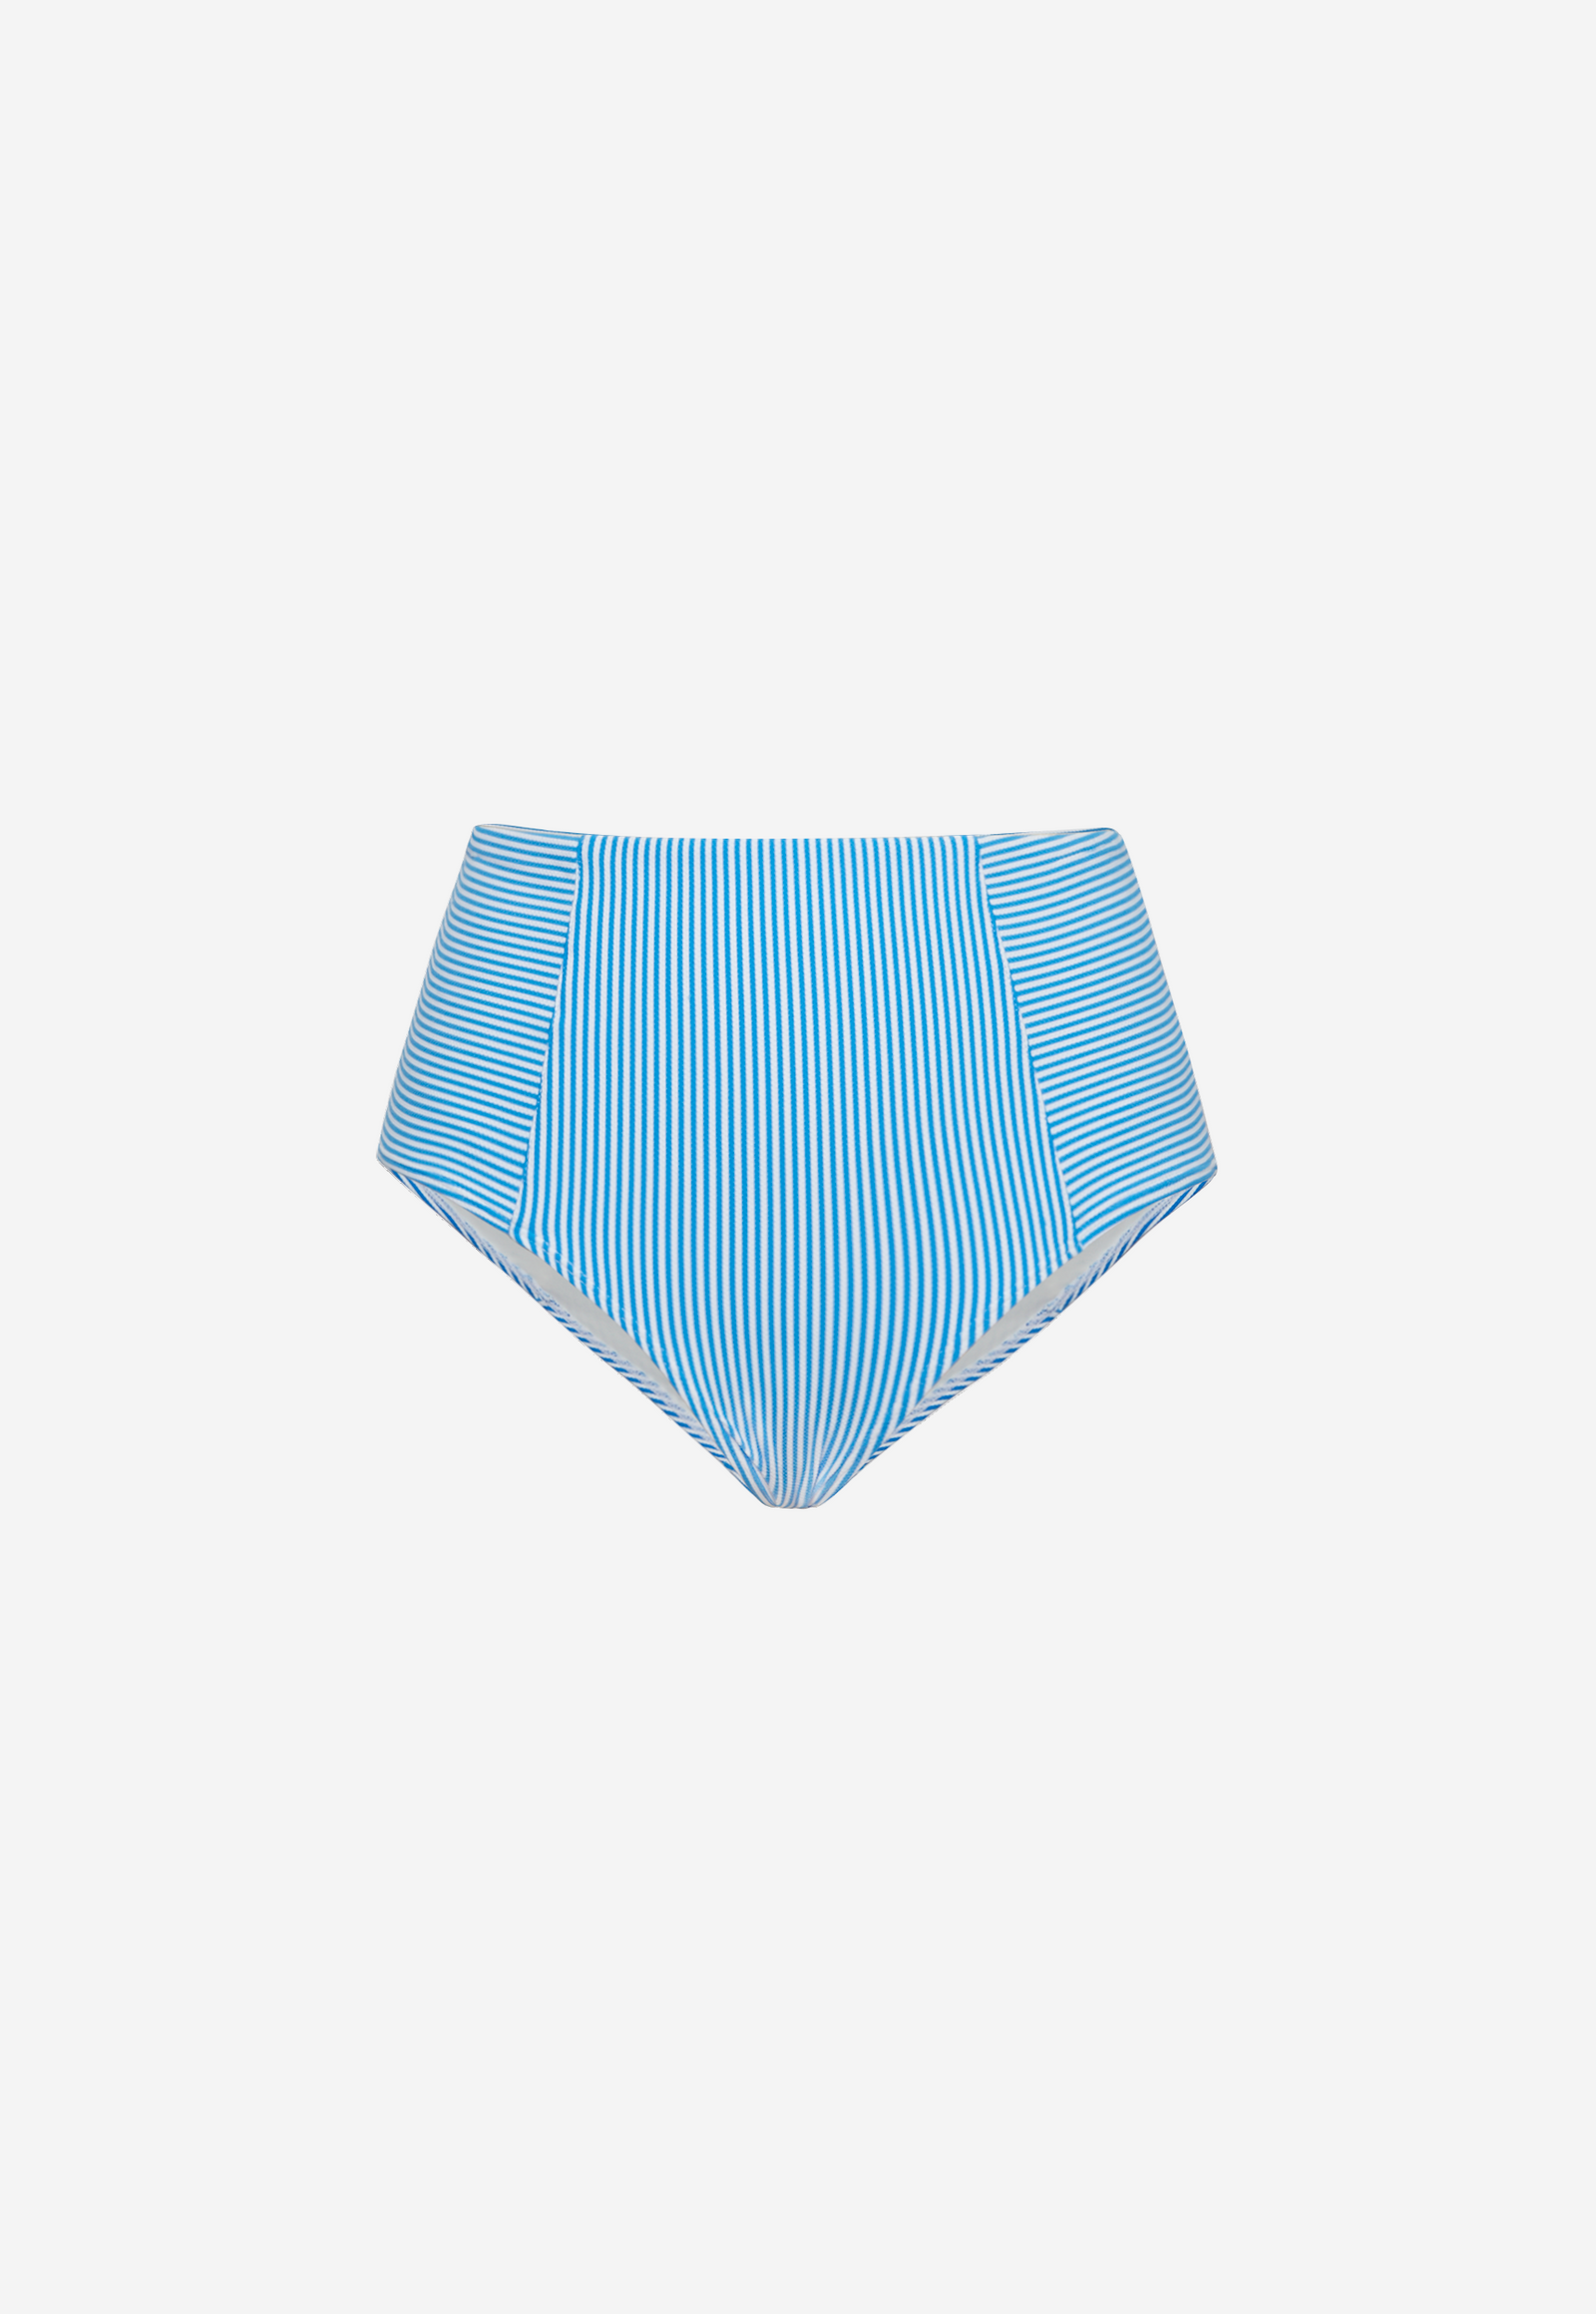 6 Shore Road Coco Bikini Bottom Women's Blue Striped Bikini in XS, S, M, L - Summer 2018 Collection